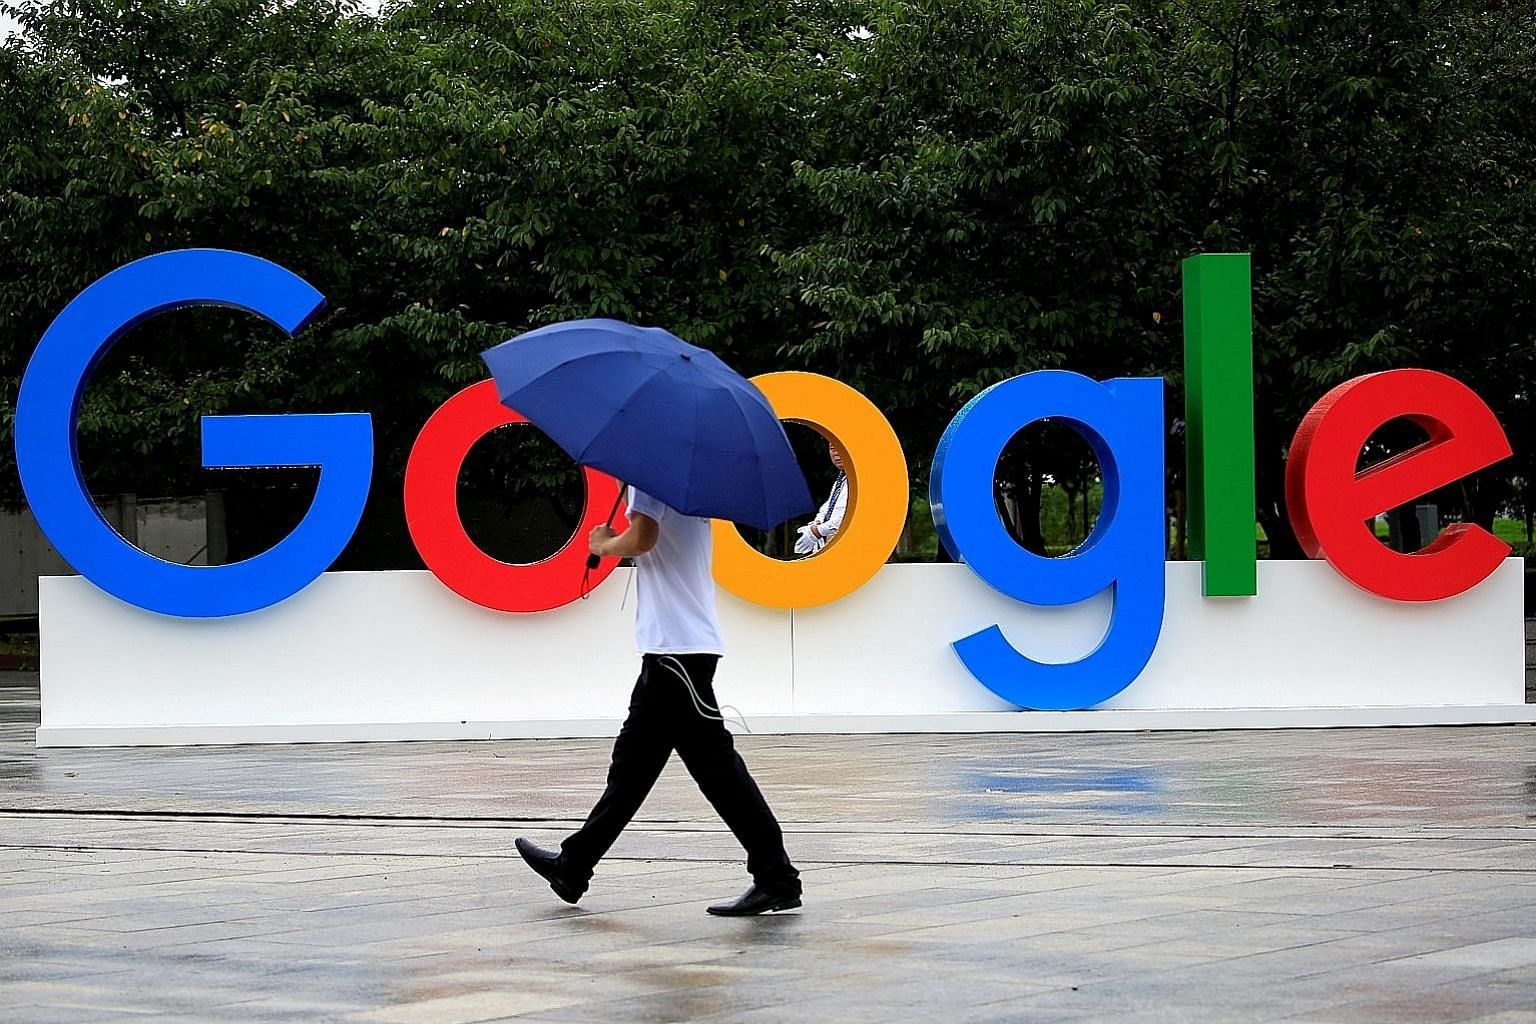 Google is keen to enter healthcare and finance, partly because its competitors are already there, says the writer. But as surveillance capitalism increasingly becomes the business model for firms, there is room for regulatory arbitrage, not only in h